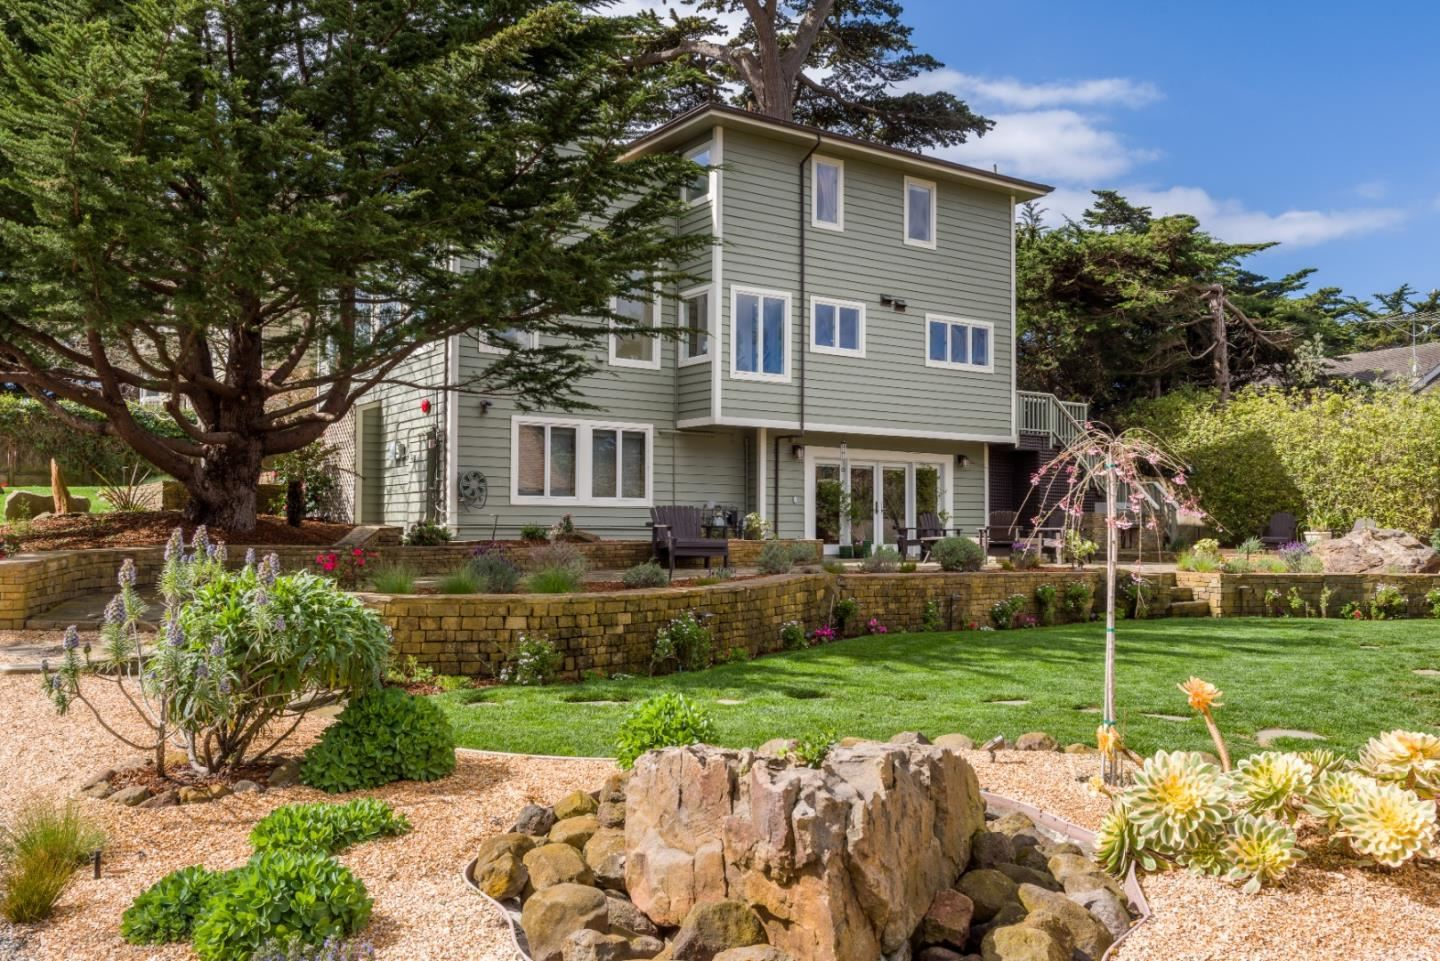 Photo for 135 Orval AVE, MOSS BEACH, CA 94038 (MLS # ML81787954)